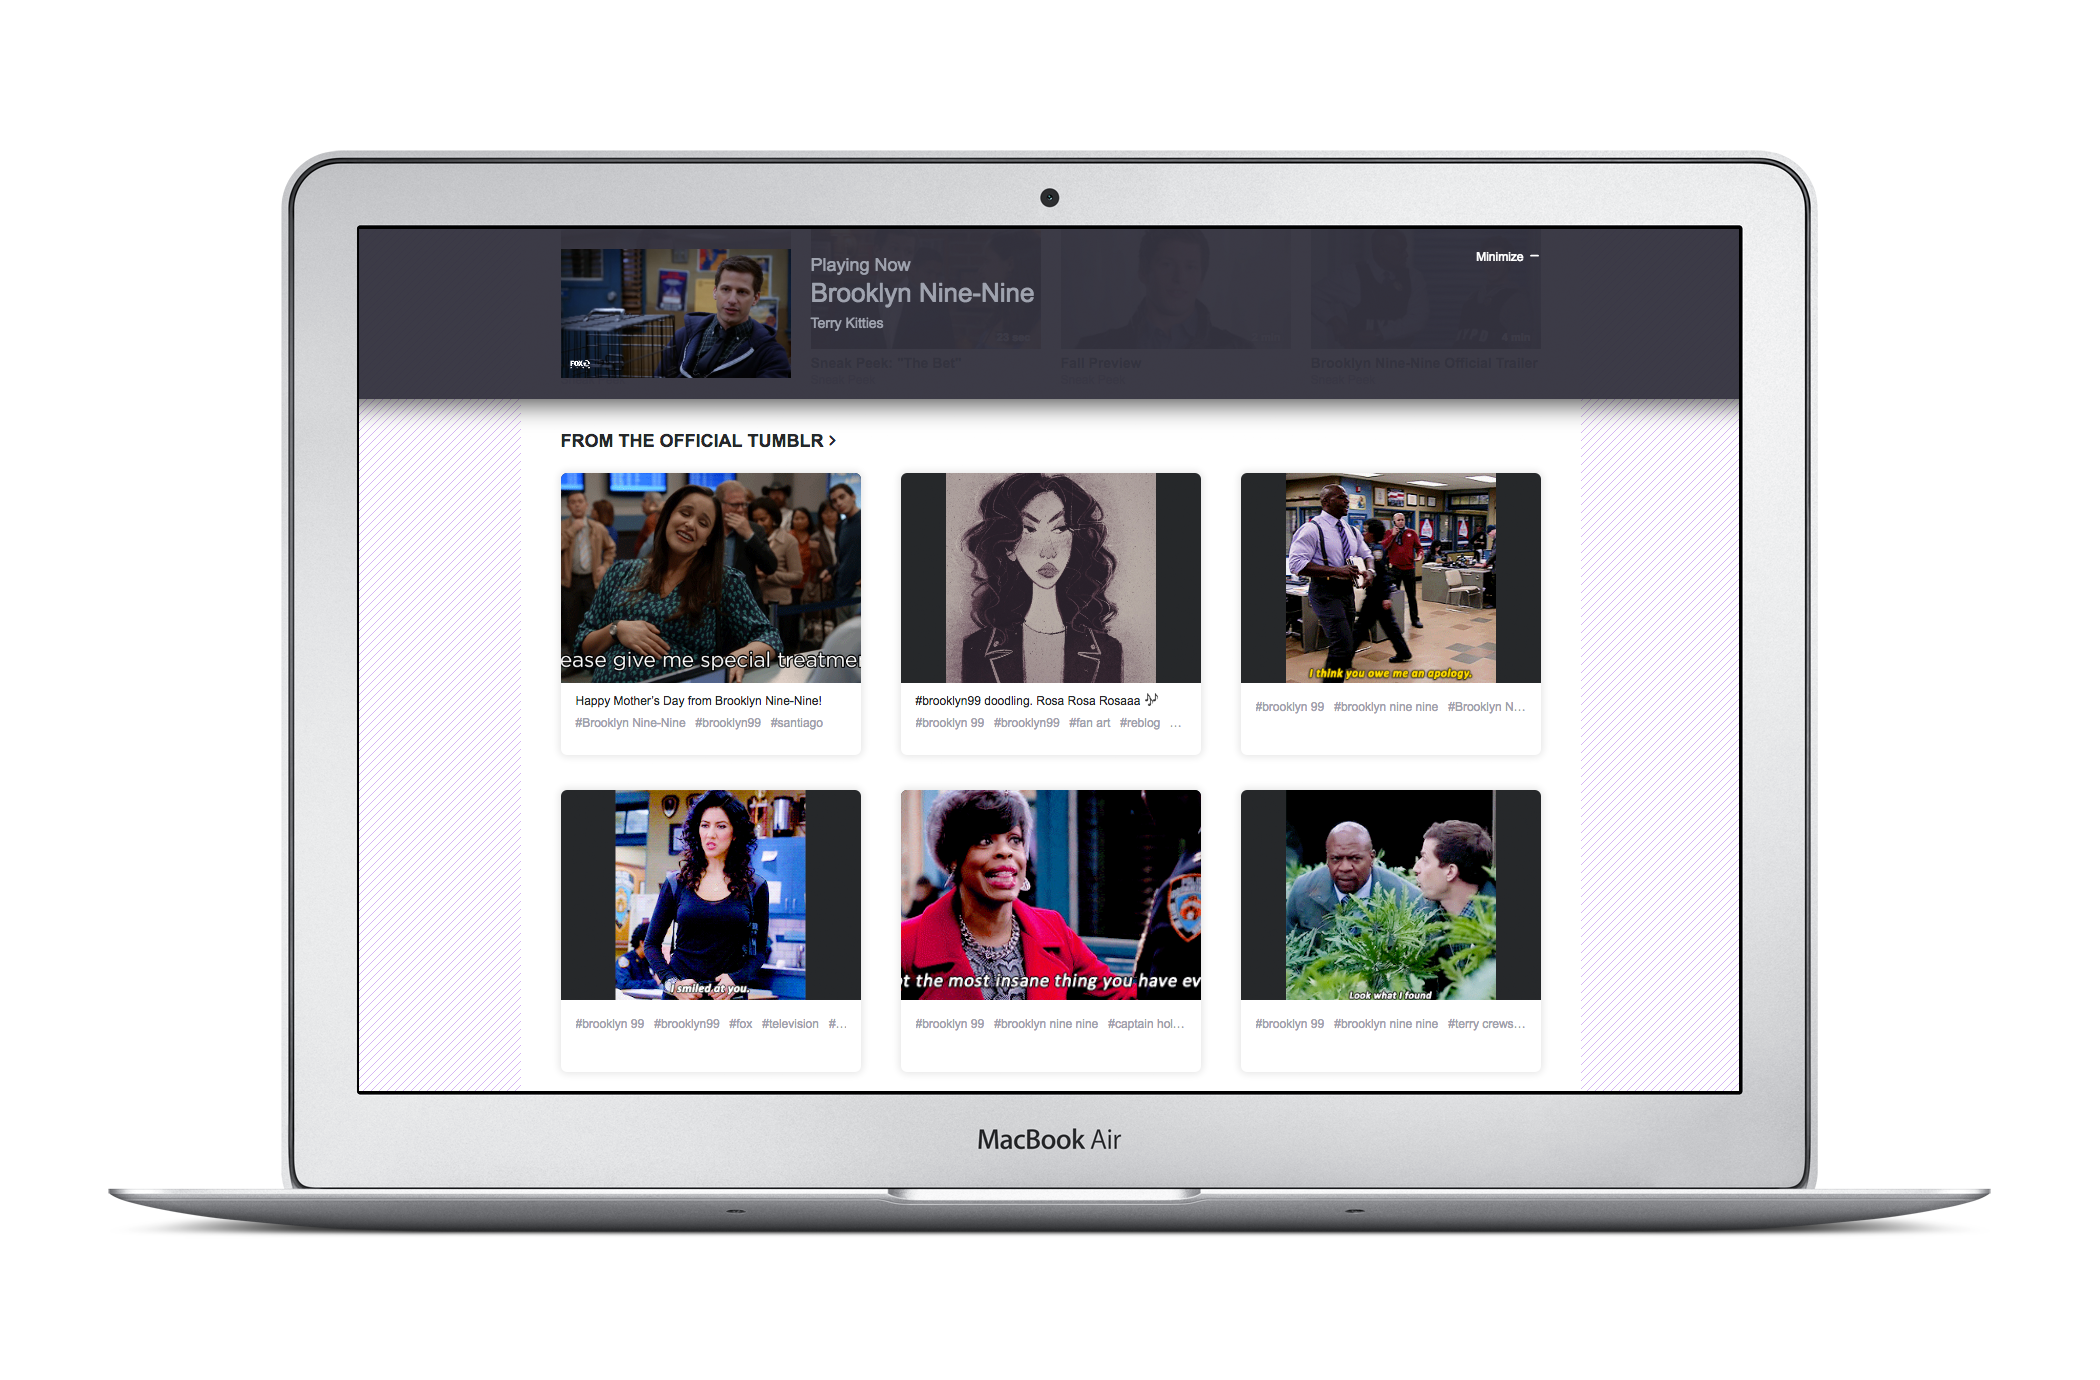 Yahoo View not only lets you watch shows from Hulu, but provides fan elements from Tumblr, such as GIFs.